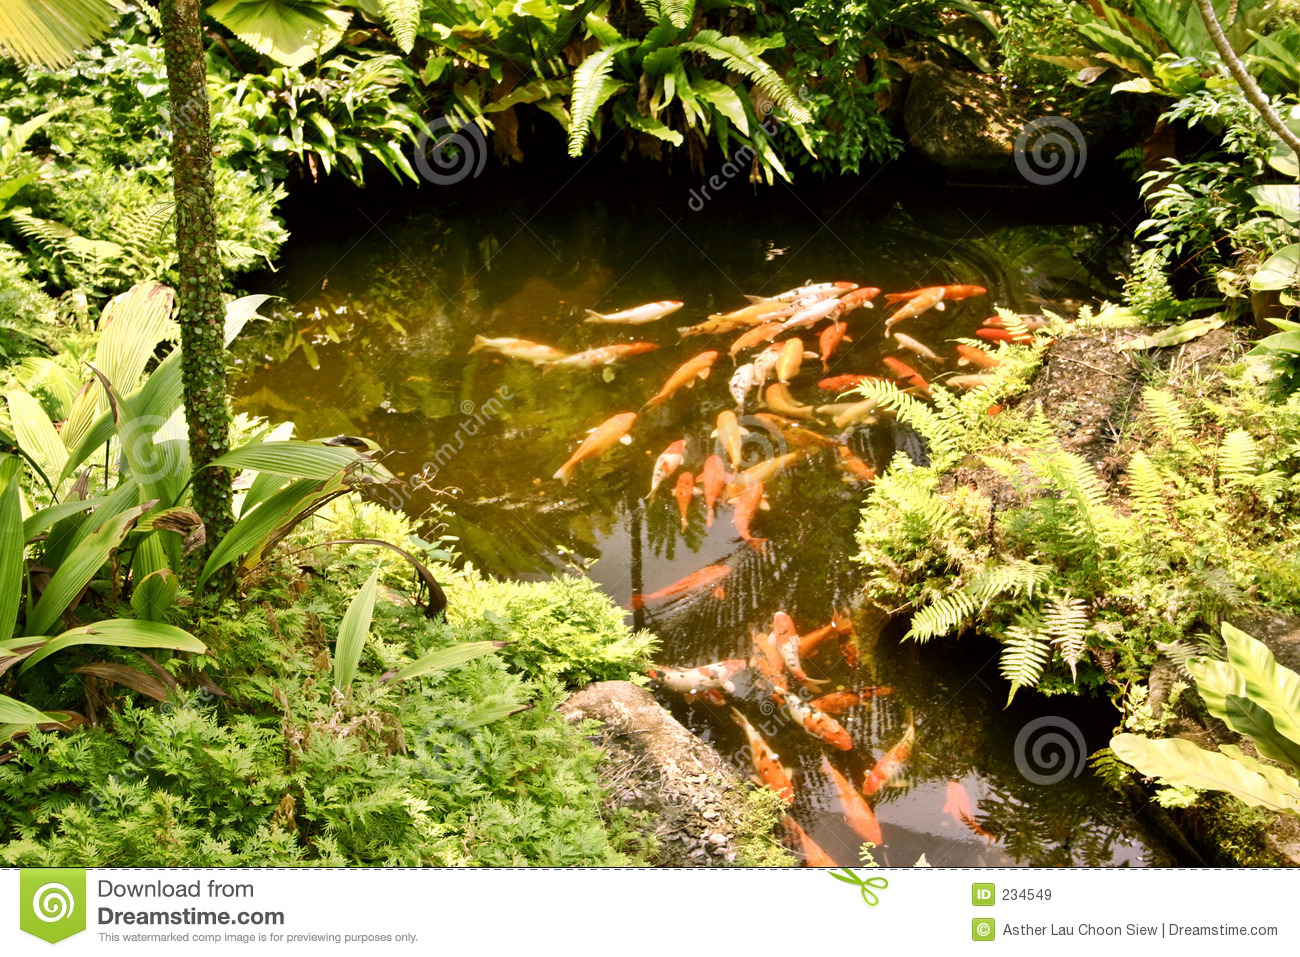 Koi carp in pond royalty free stock images image 234549 for Carp pond design